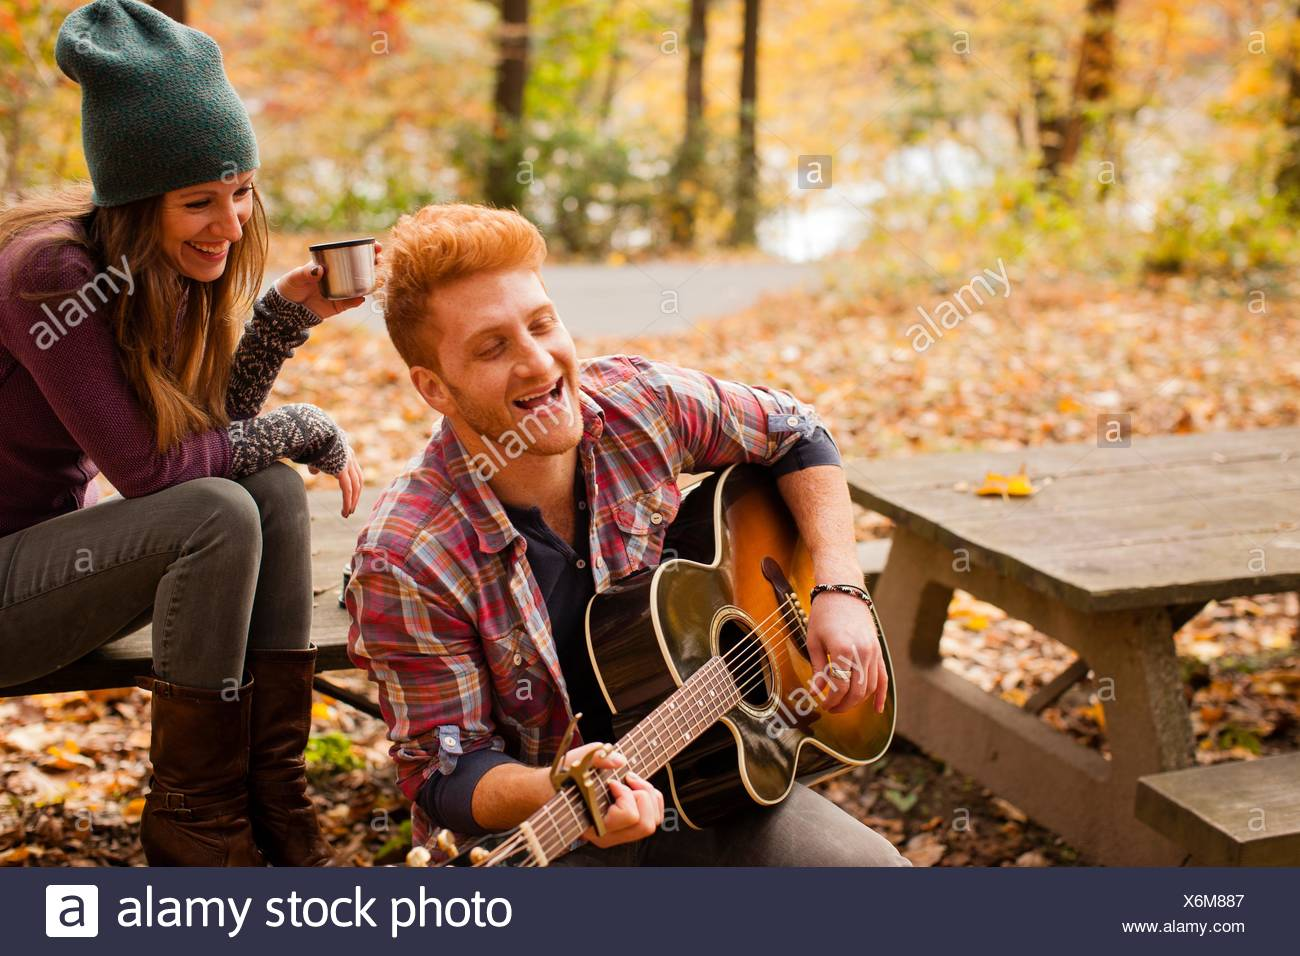 Young couple playing guitar on picnic bench in autumn forest - Stock Image